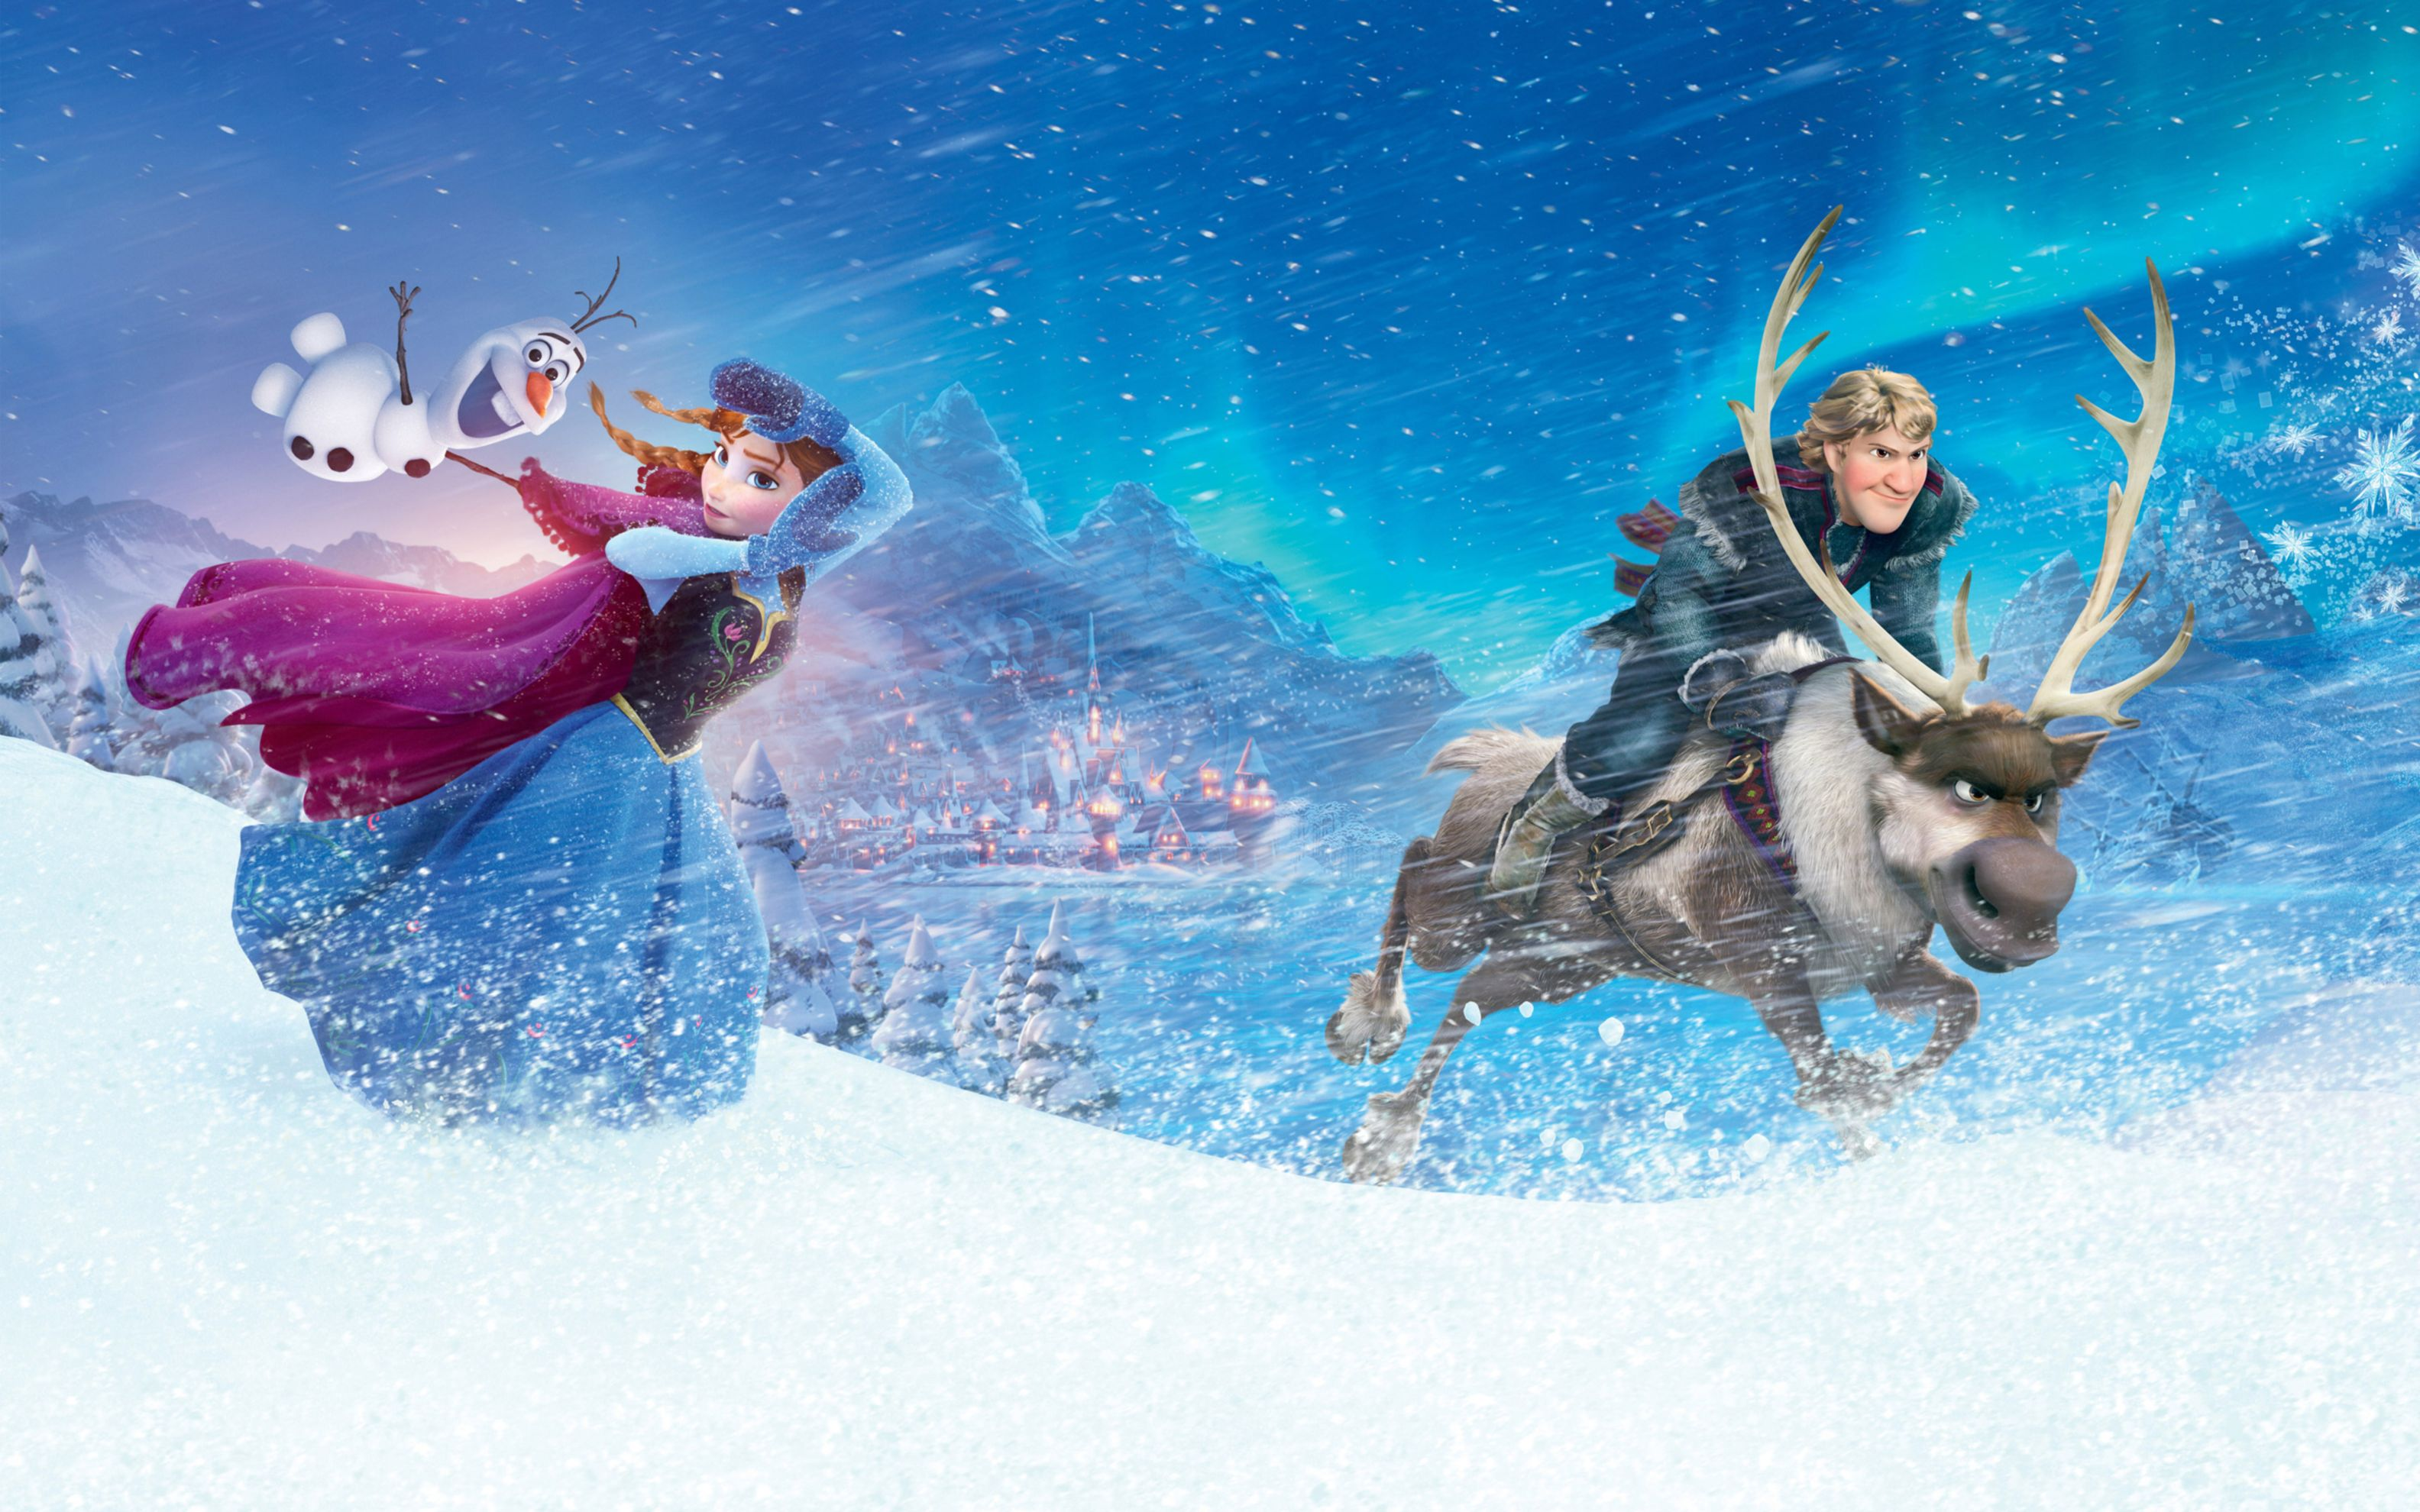 Download free HD Anna Kristoff In Frozen Wide Wallpaper, image